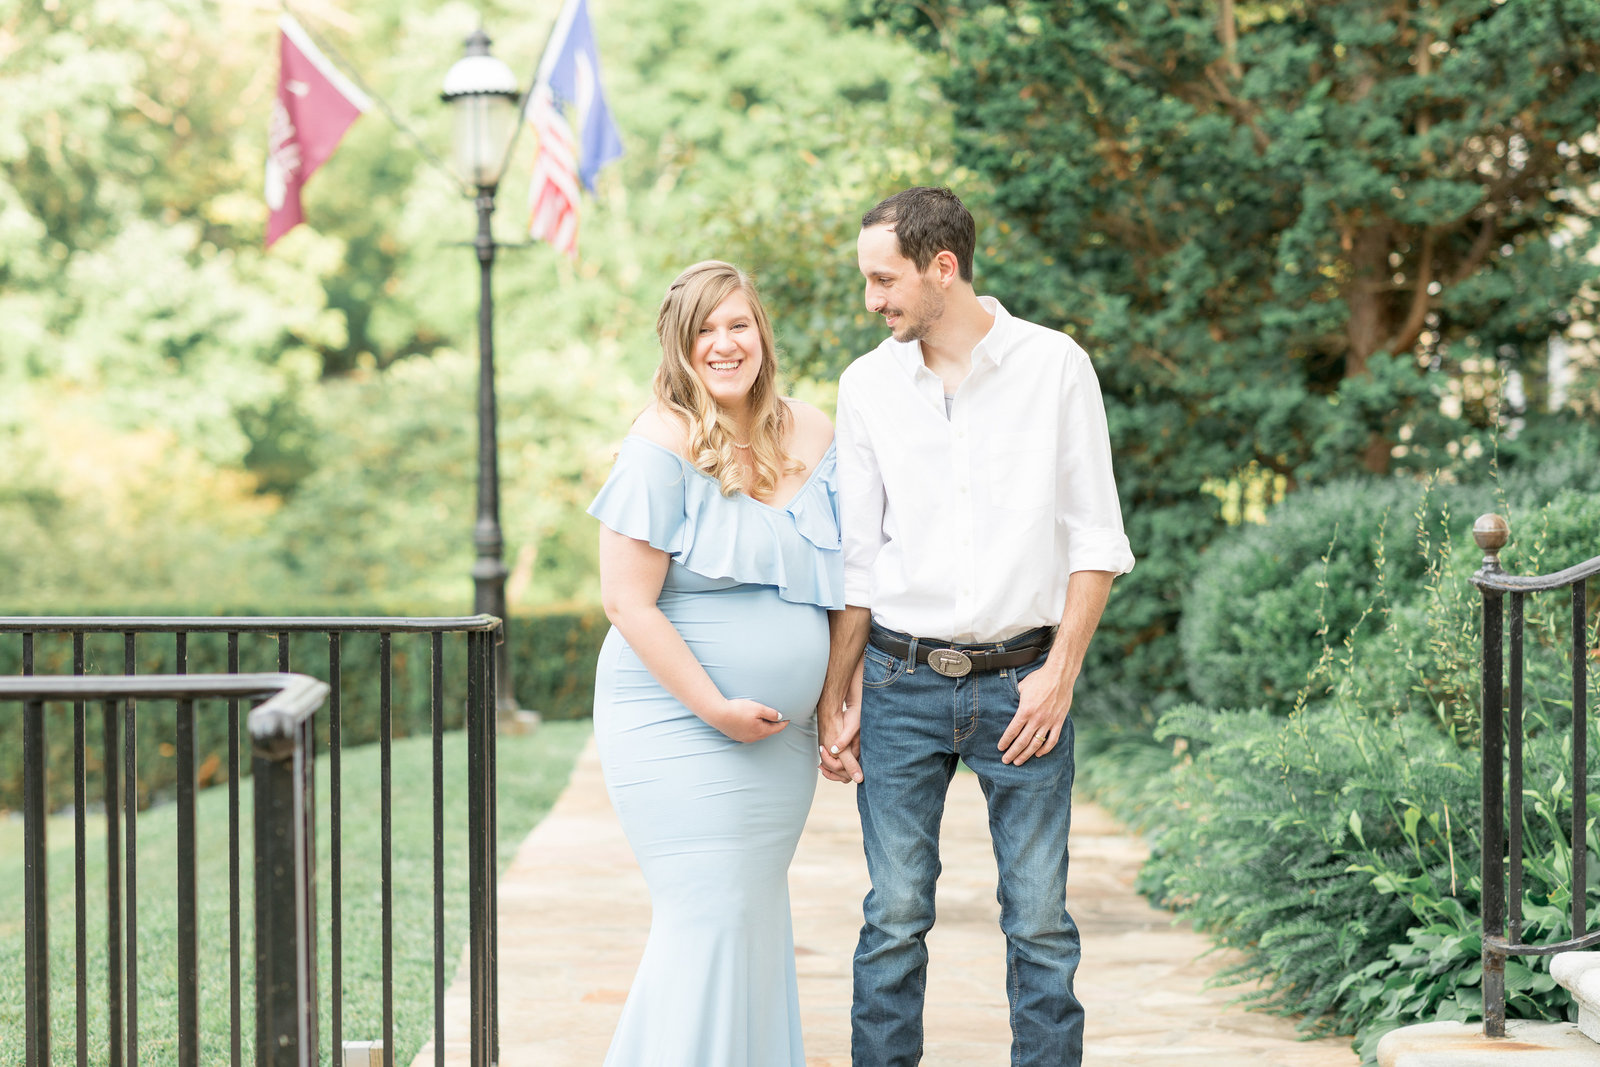 kimberly-ben-summer-maternity-photo-session-at-airlie-warrenton-va-010